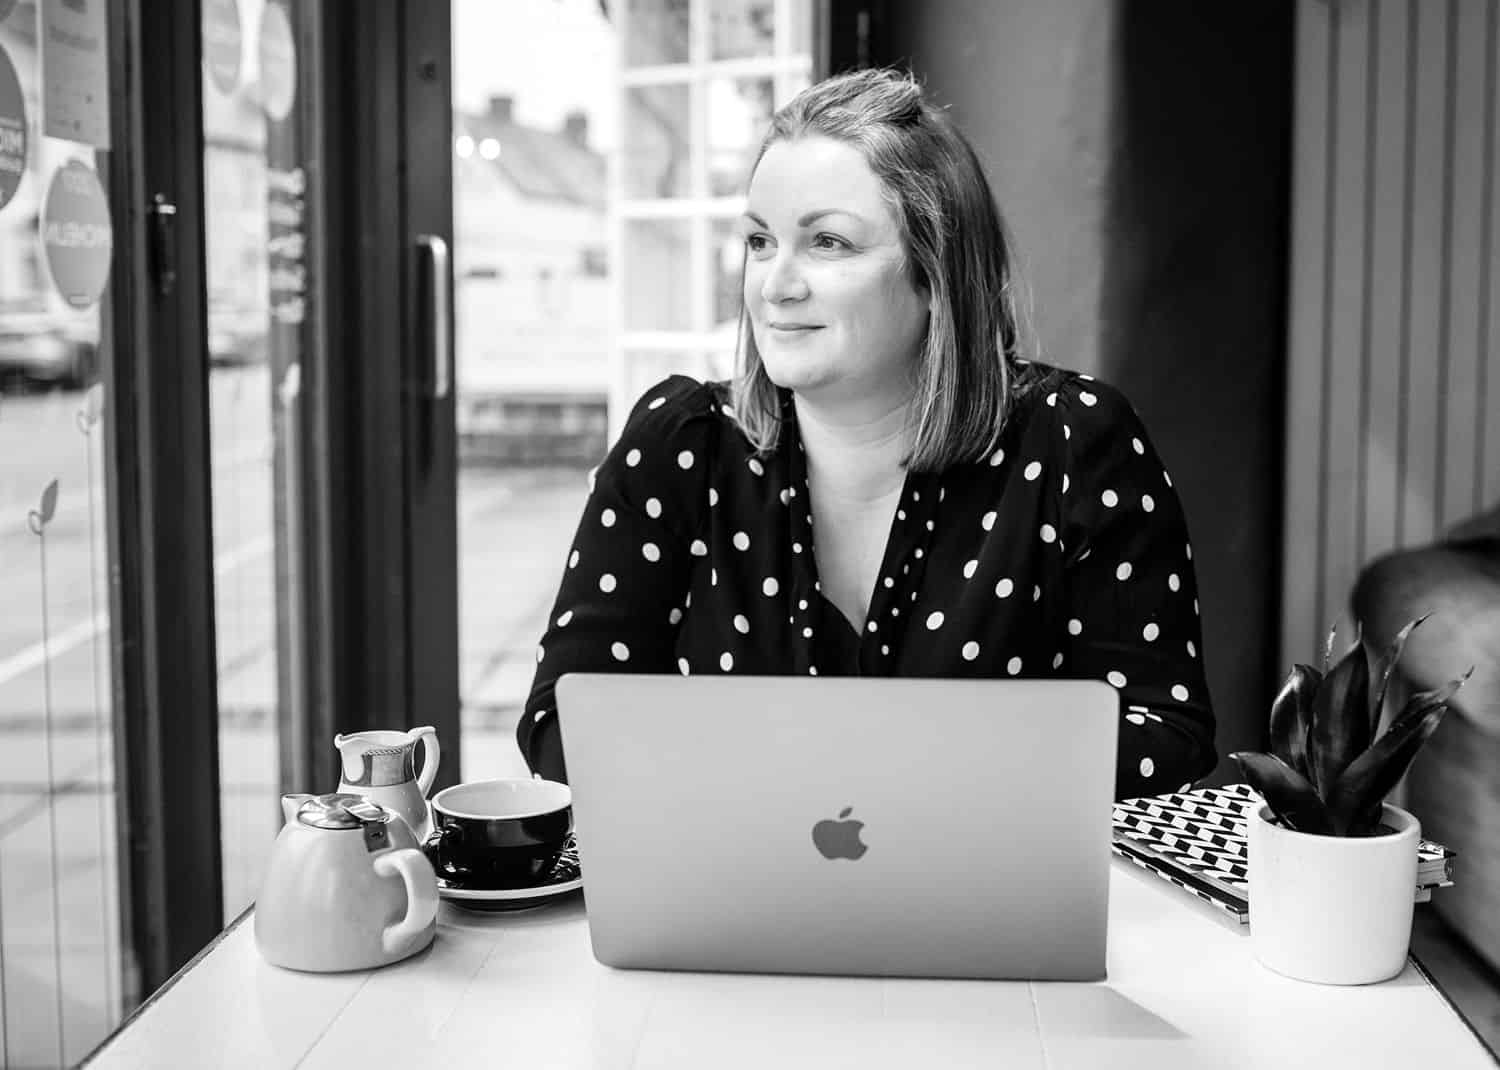 A blonde woman in a black polka-dot dress sits at her laptop in a coffee shop drinking tea